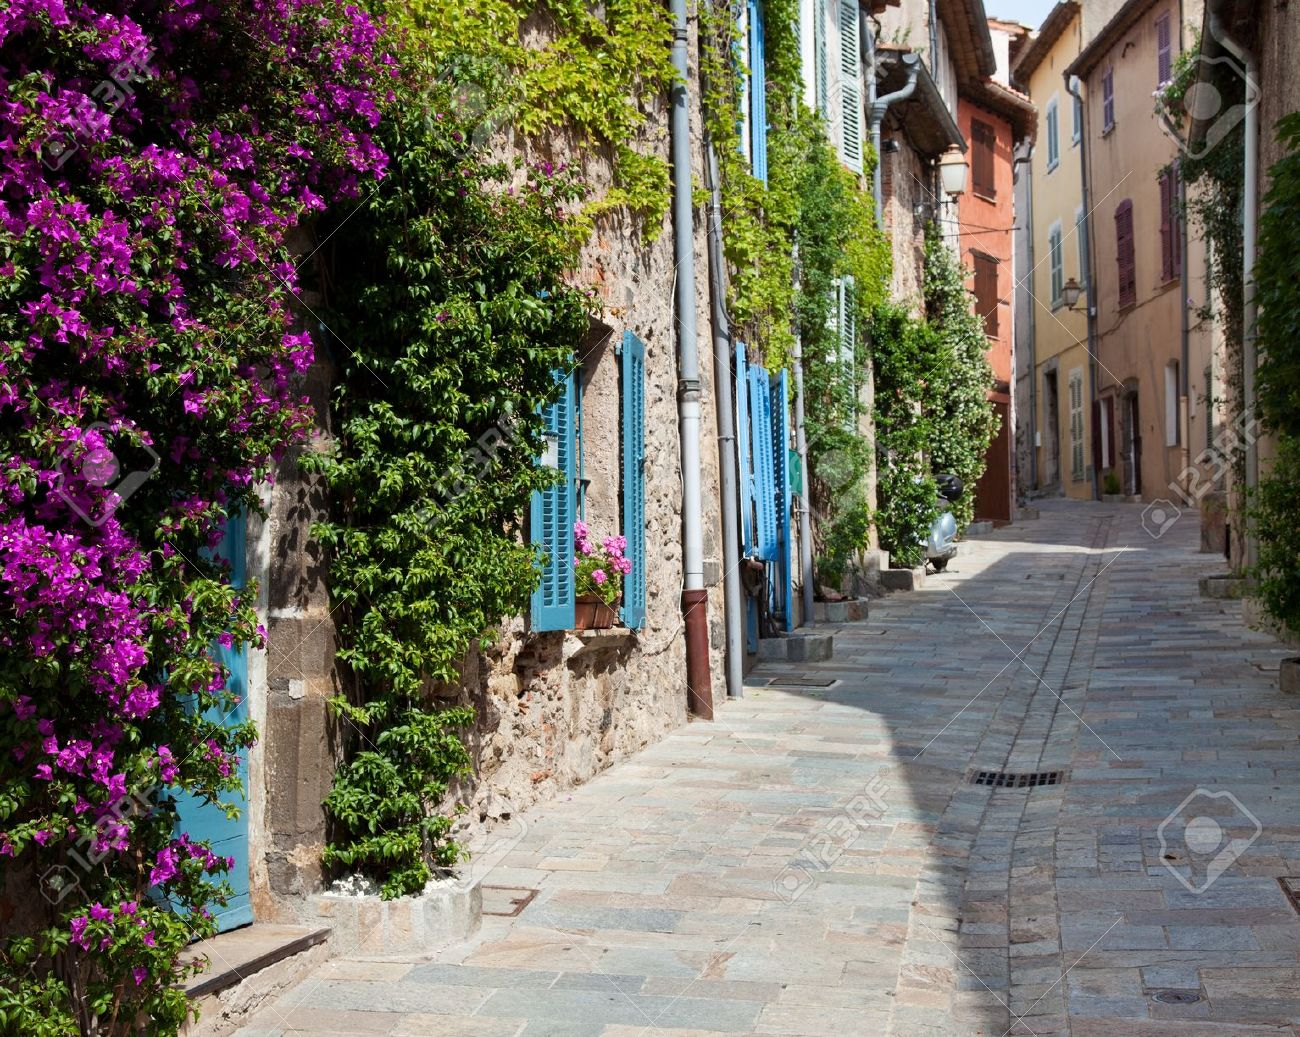 14364115-Traditional-provencal-street-scenery-Stock-Photo-provence.jpg